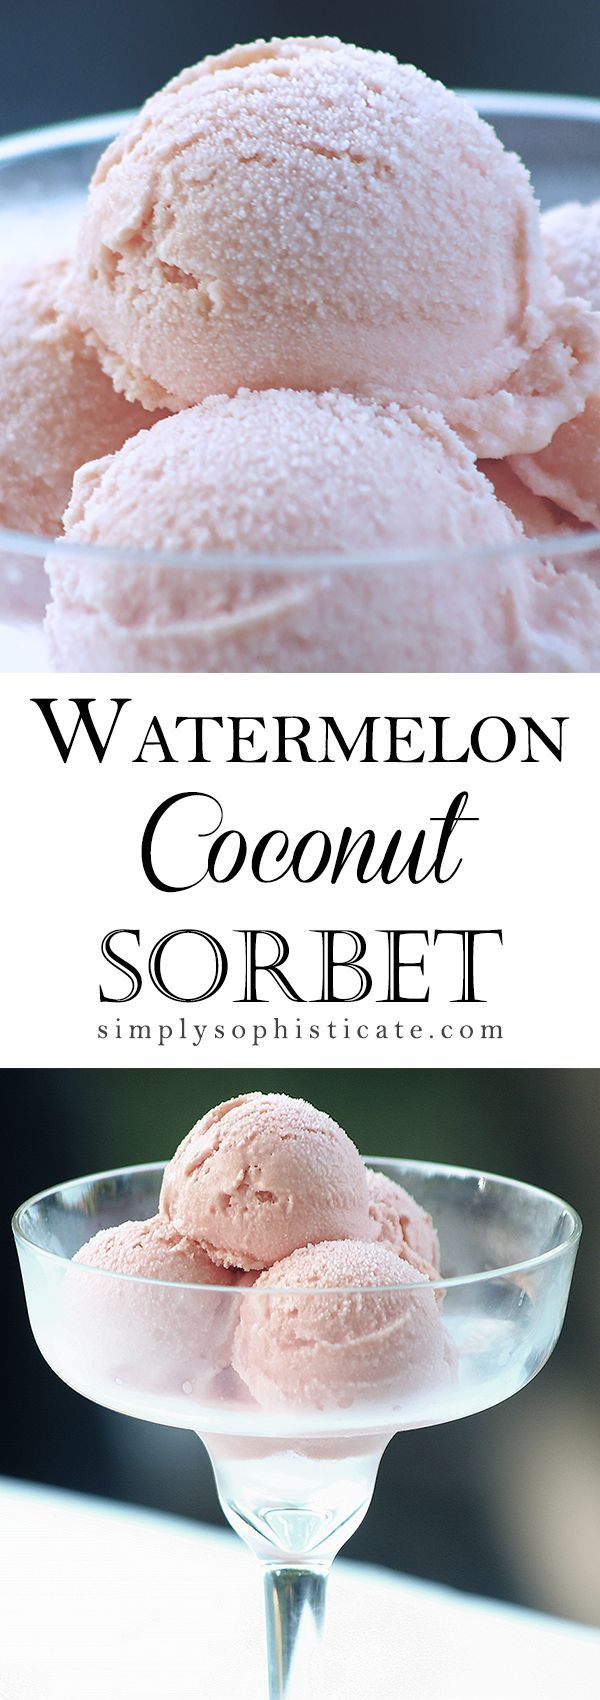 Watermelon Coconut Sorbet